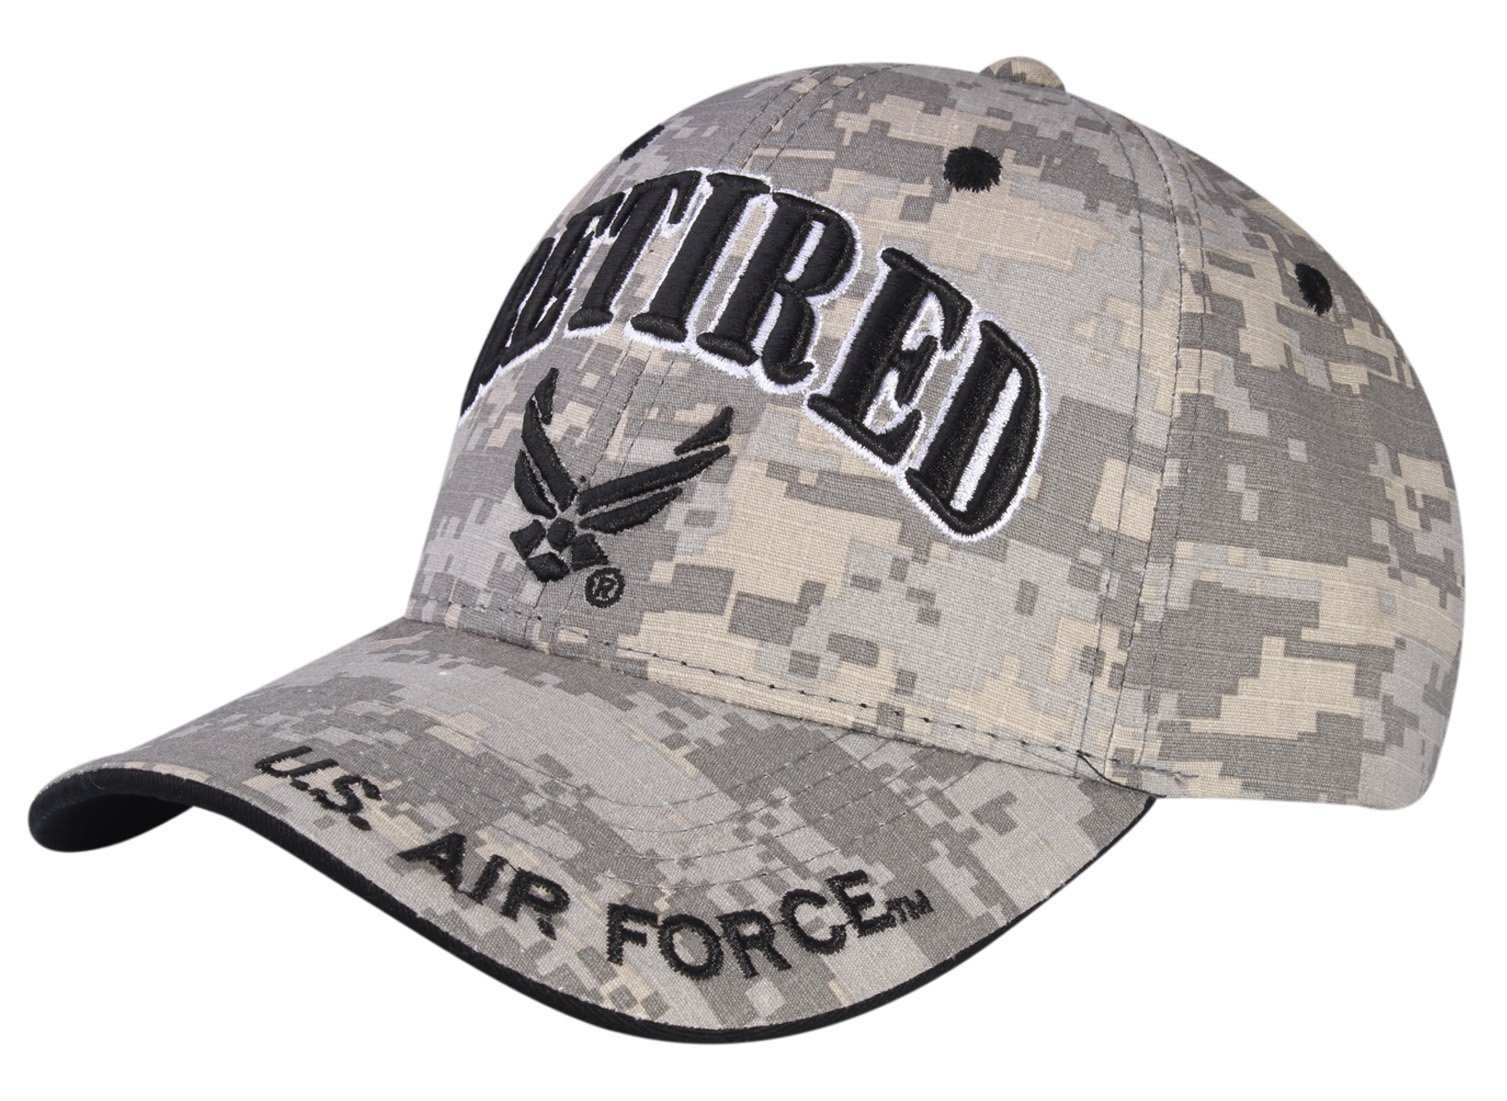 cebf0ff8545 A air retired u air force logo licensed embroidered military cap JPG  1507x1101 Air force retired